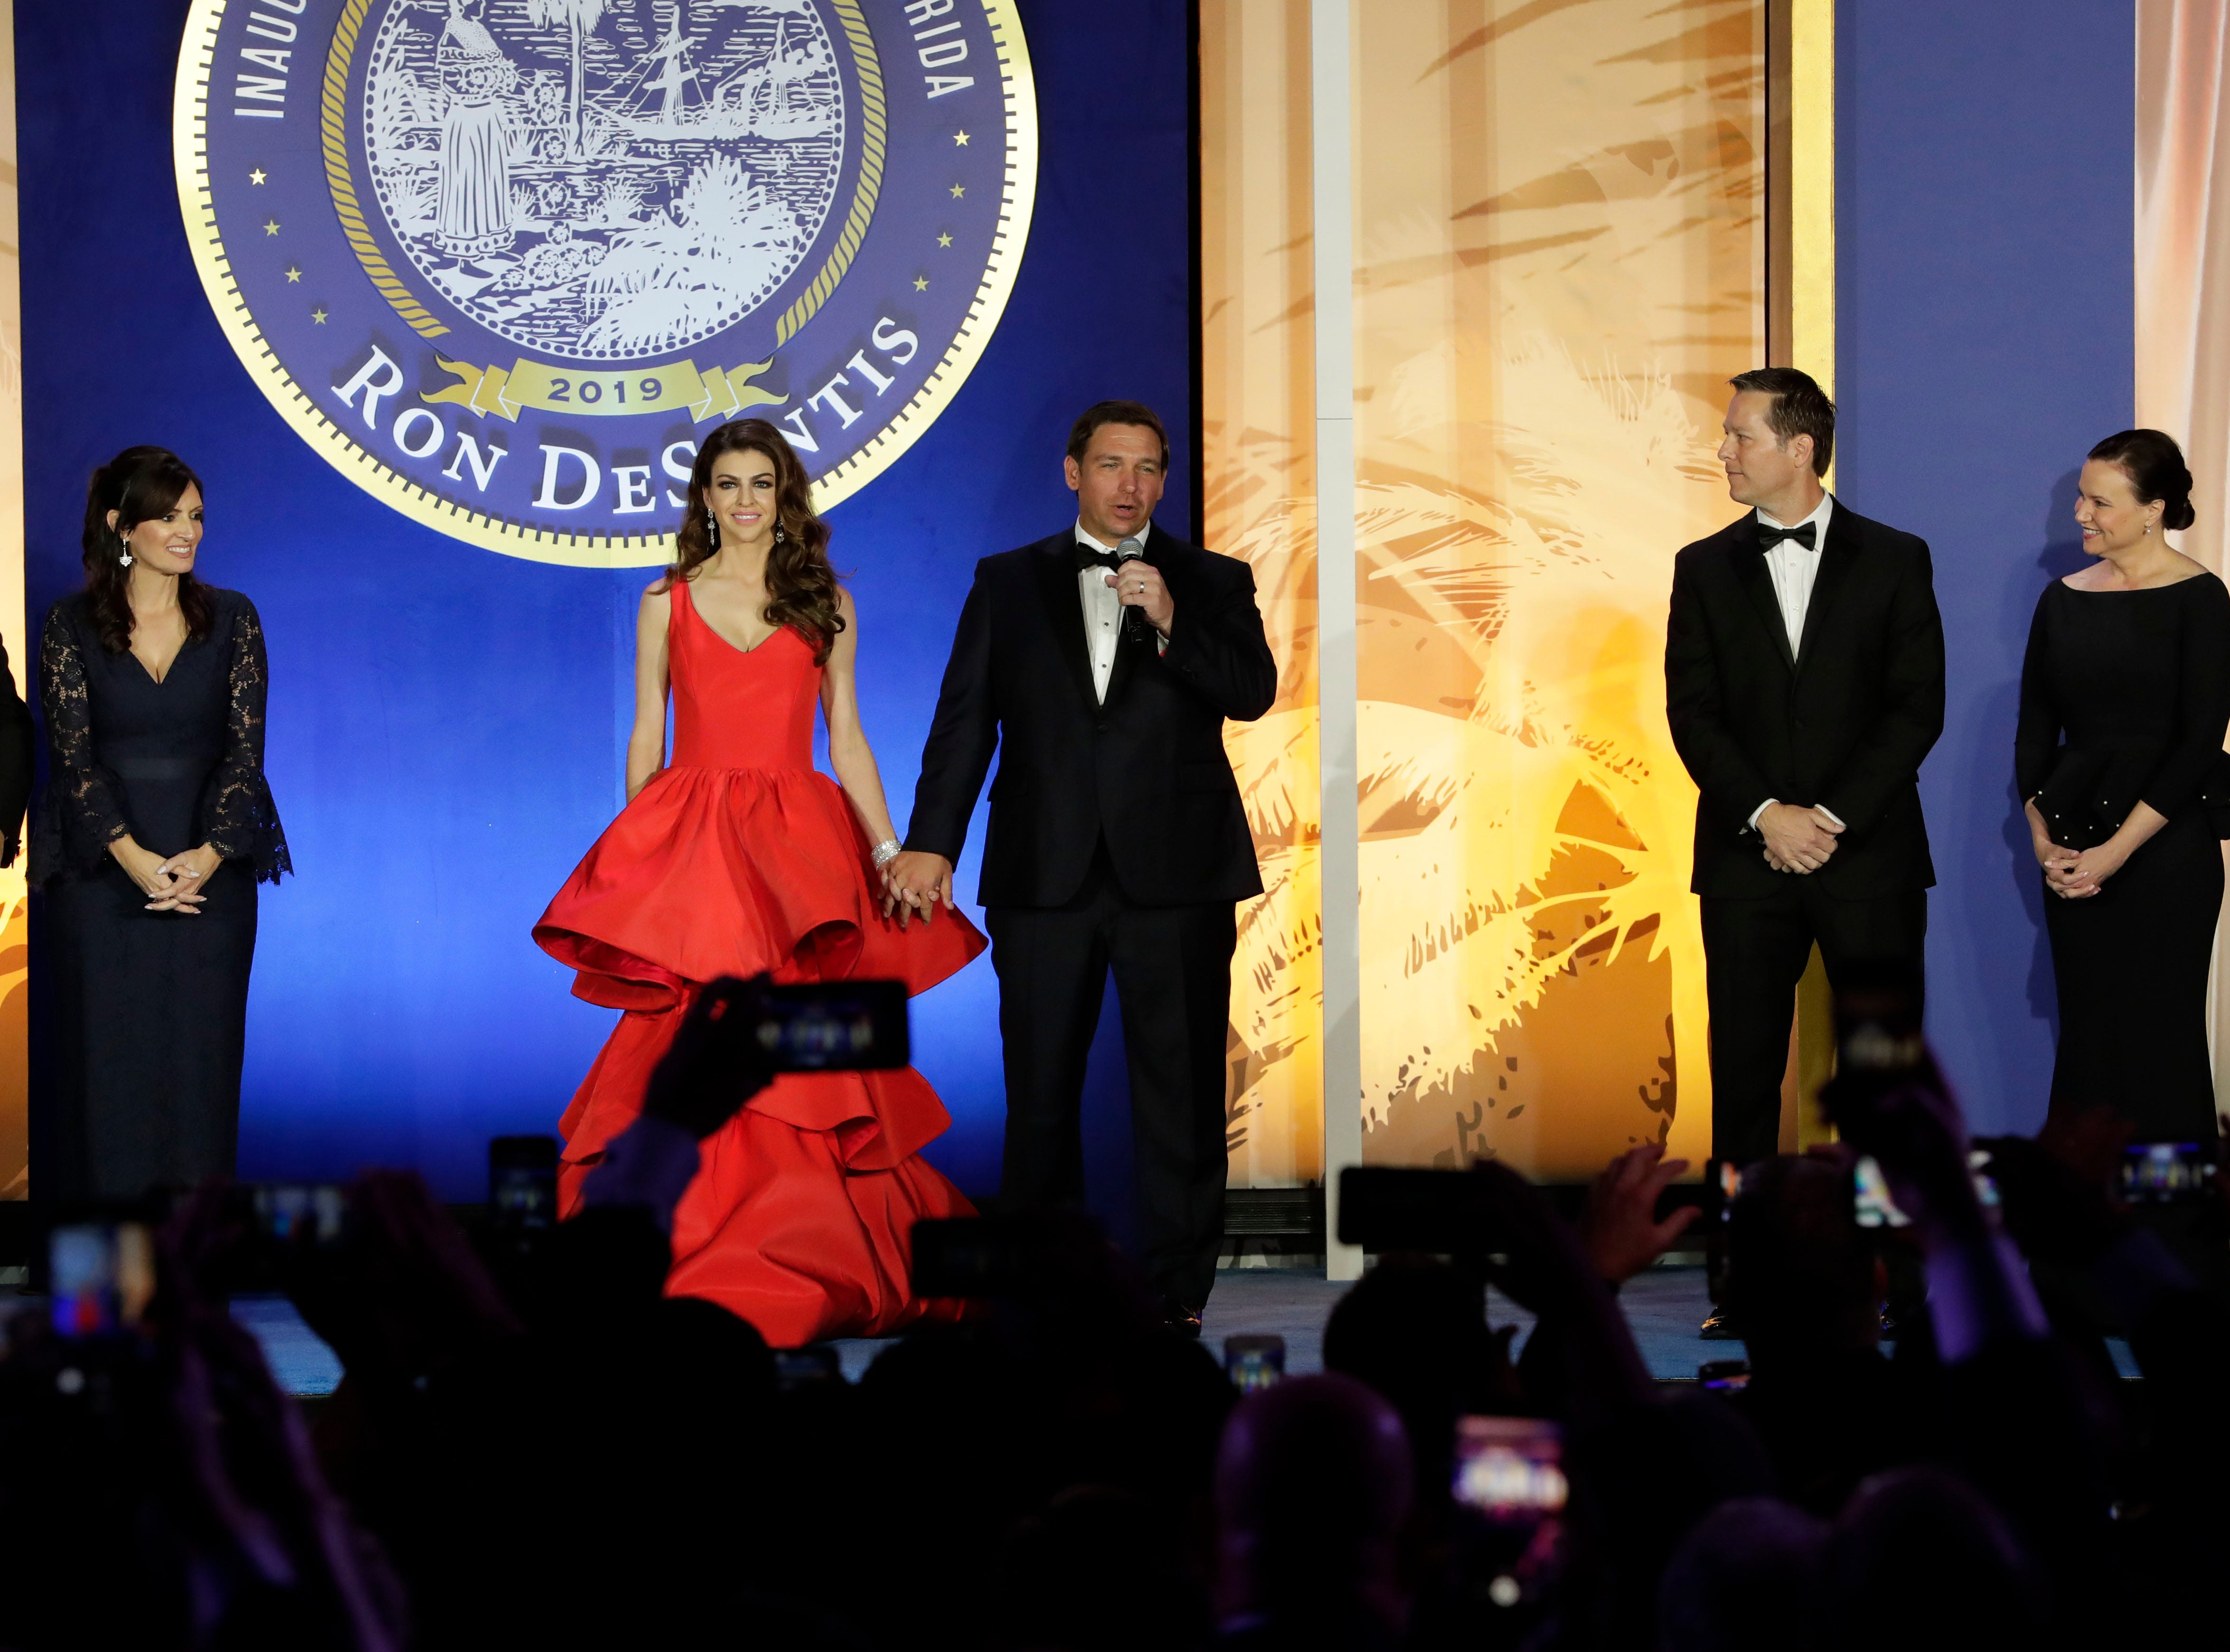 Hundreds of guests from all over Florida attend Florida's 46th Governor's Inaugural Ball at the Tucker Civic Center, Tuesday, Jan. 8, 2019. Gov. Ron DeSantis gives a few short remarks thanking everyone for attending and their support before he dances with his wife, first lady Casey DeSantis.